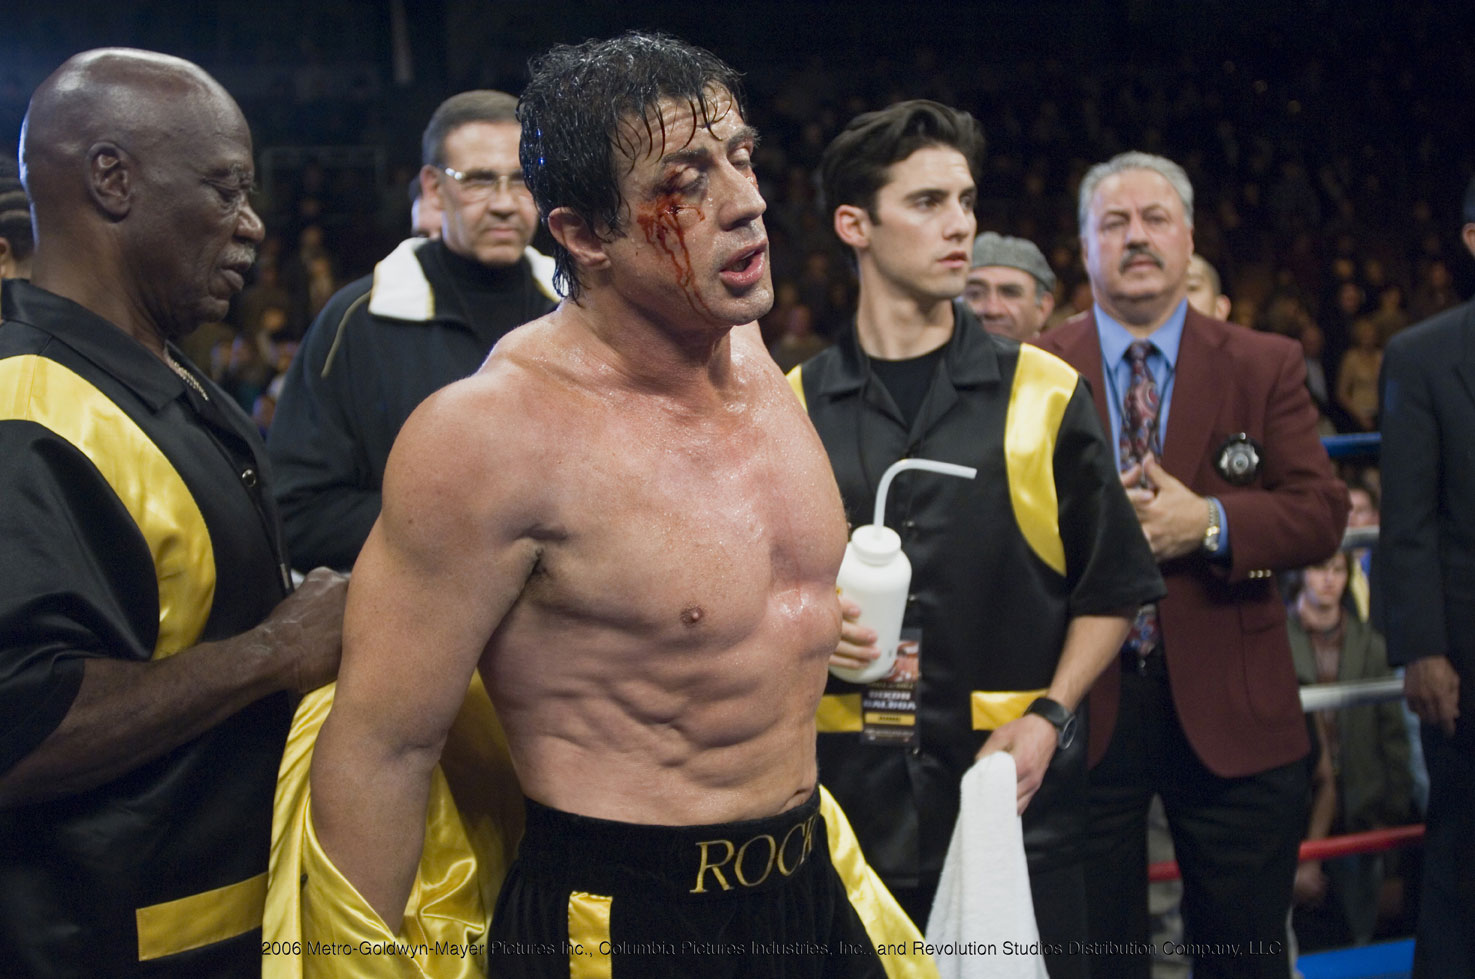 Sylvester Stallone Workout - Everything You Need To Know